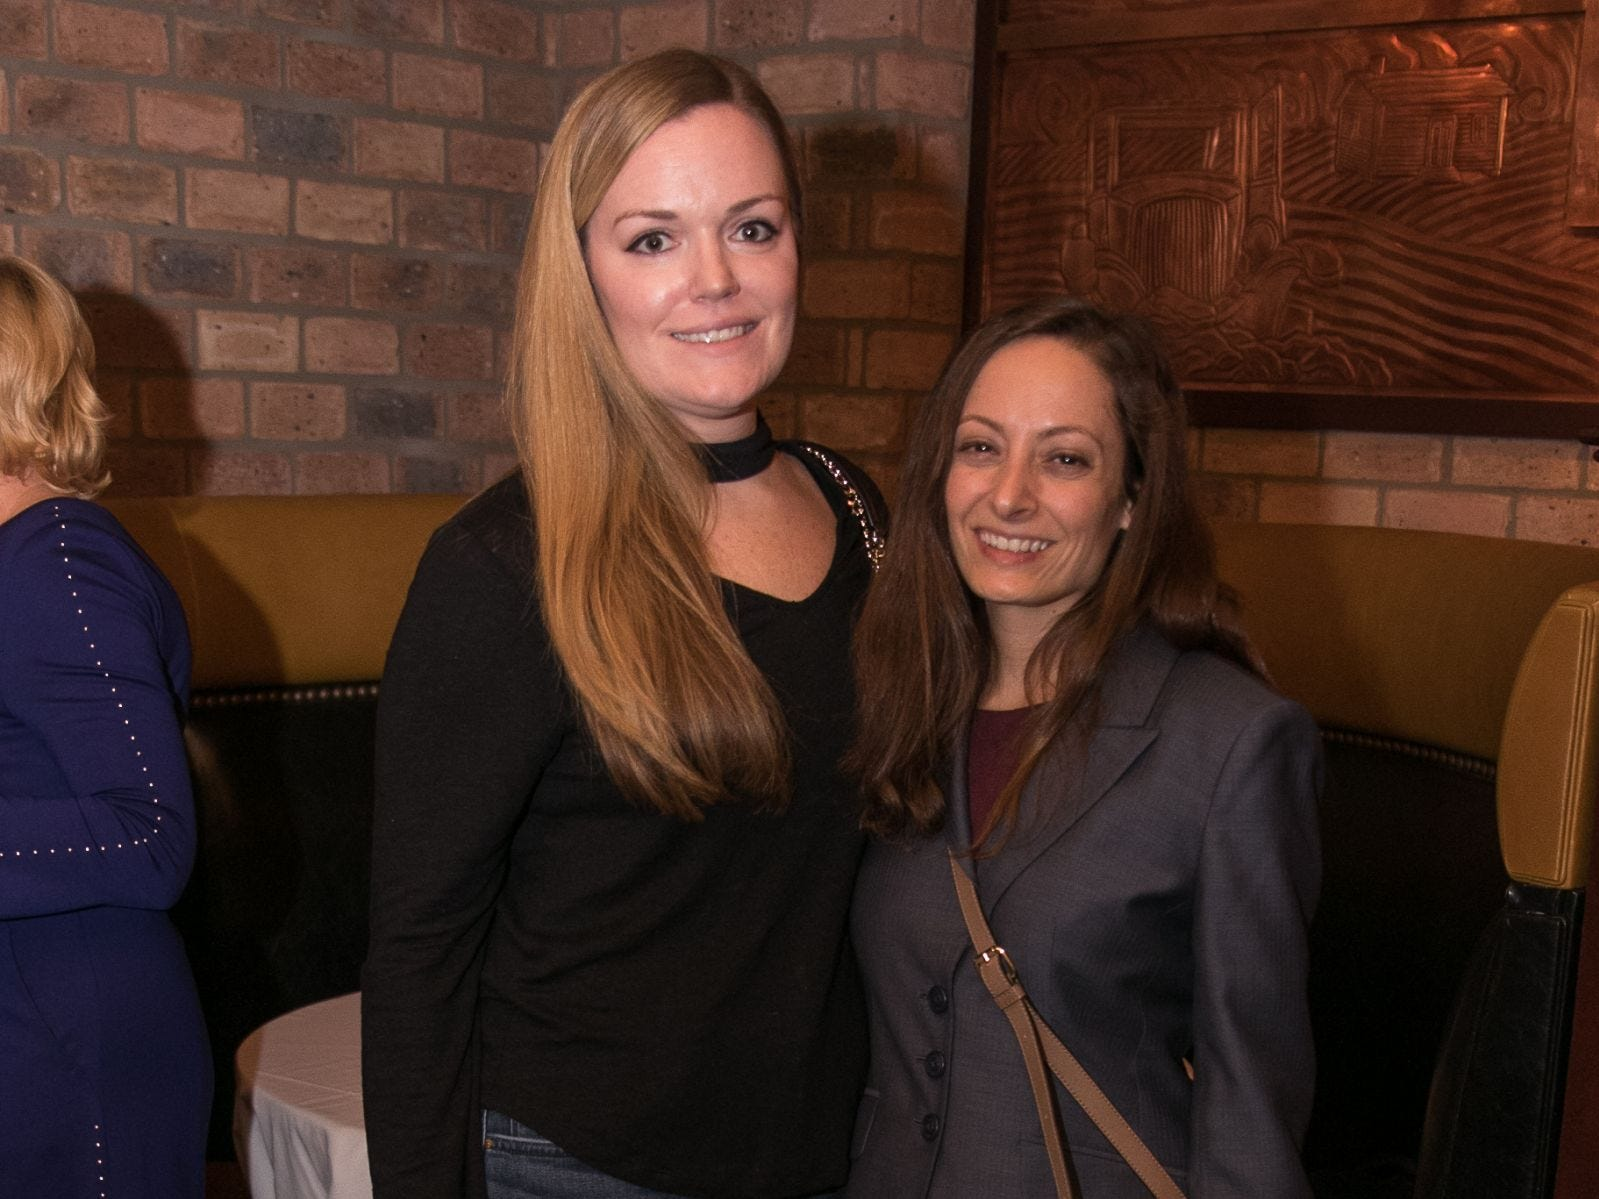 Vanessa Falkenstern, Dana Bressman. Christina Gibbons of Special Properties held a cocktail reception to acknowledge her clients at Roots Steakhouse in Ridgewood. 02/07/2019